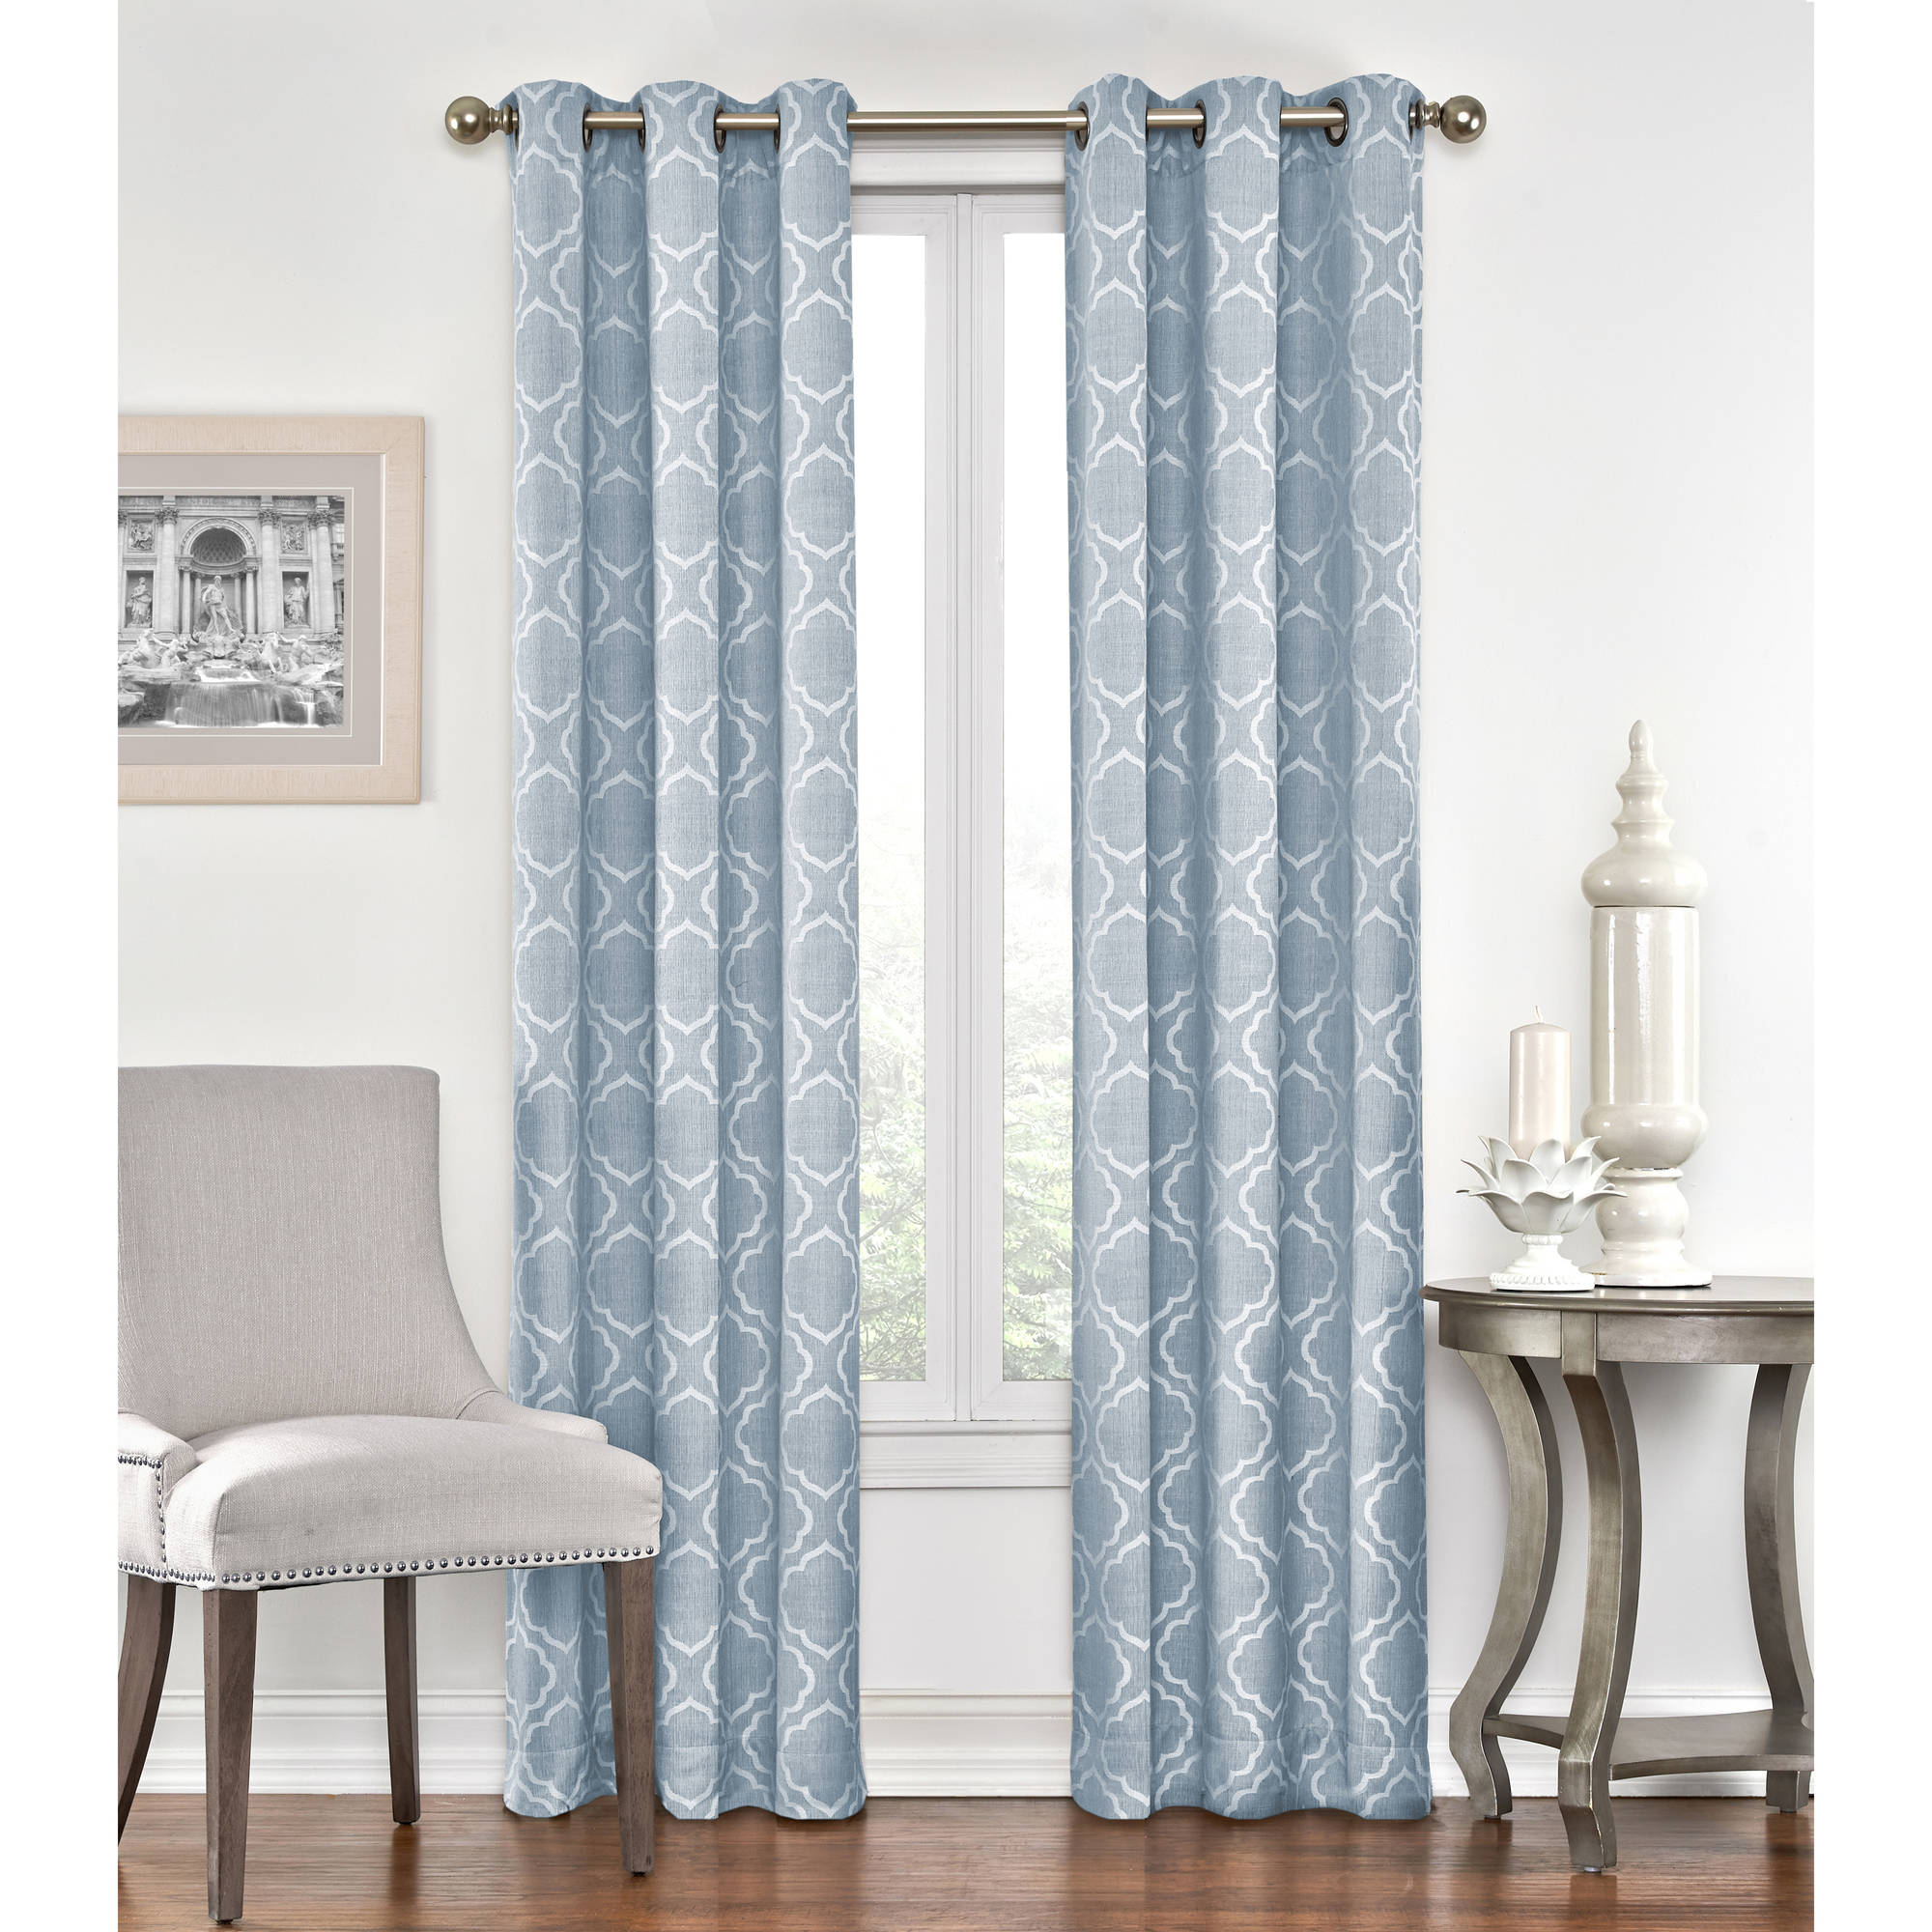 window walmart drapes curtains and gardens thermal blocking com available homes sizes multiple leaf back tab scroll better light ip